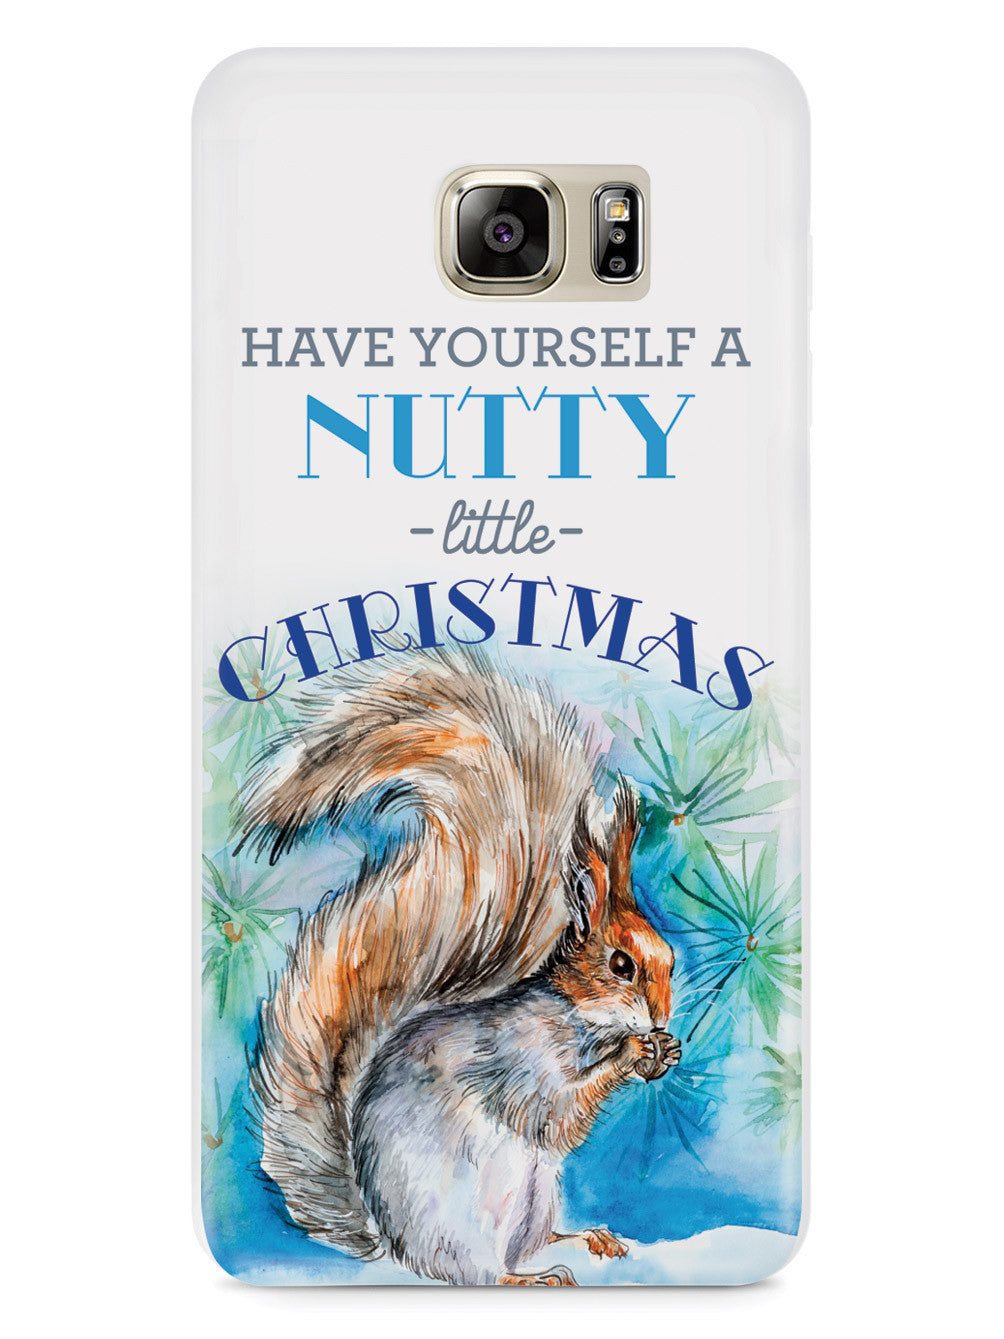 Have Yourself a Nutty Little Christmas Case